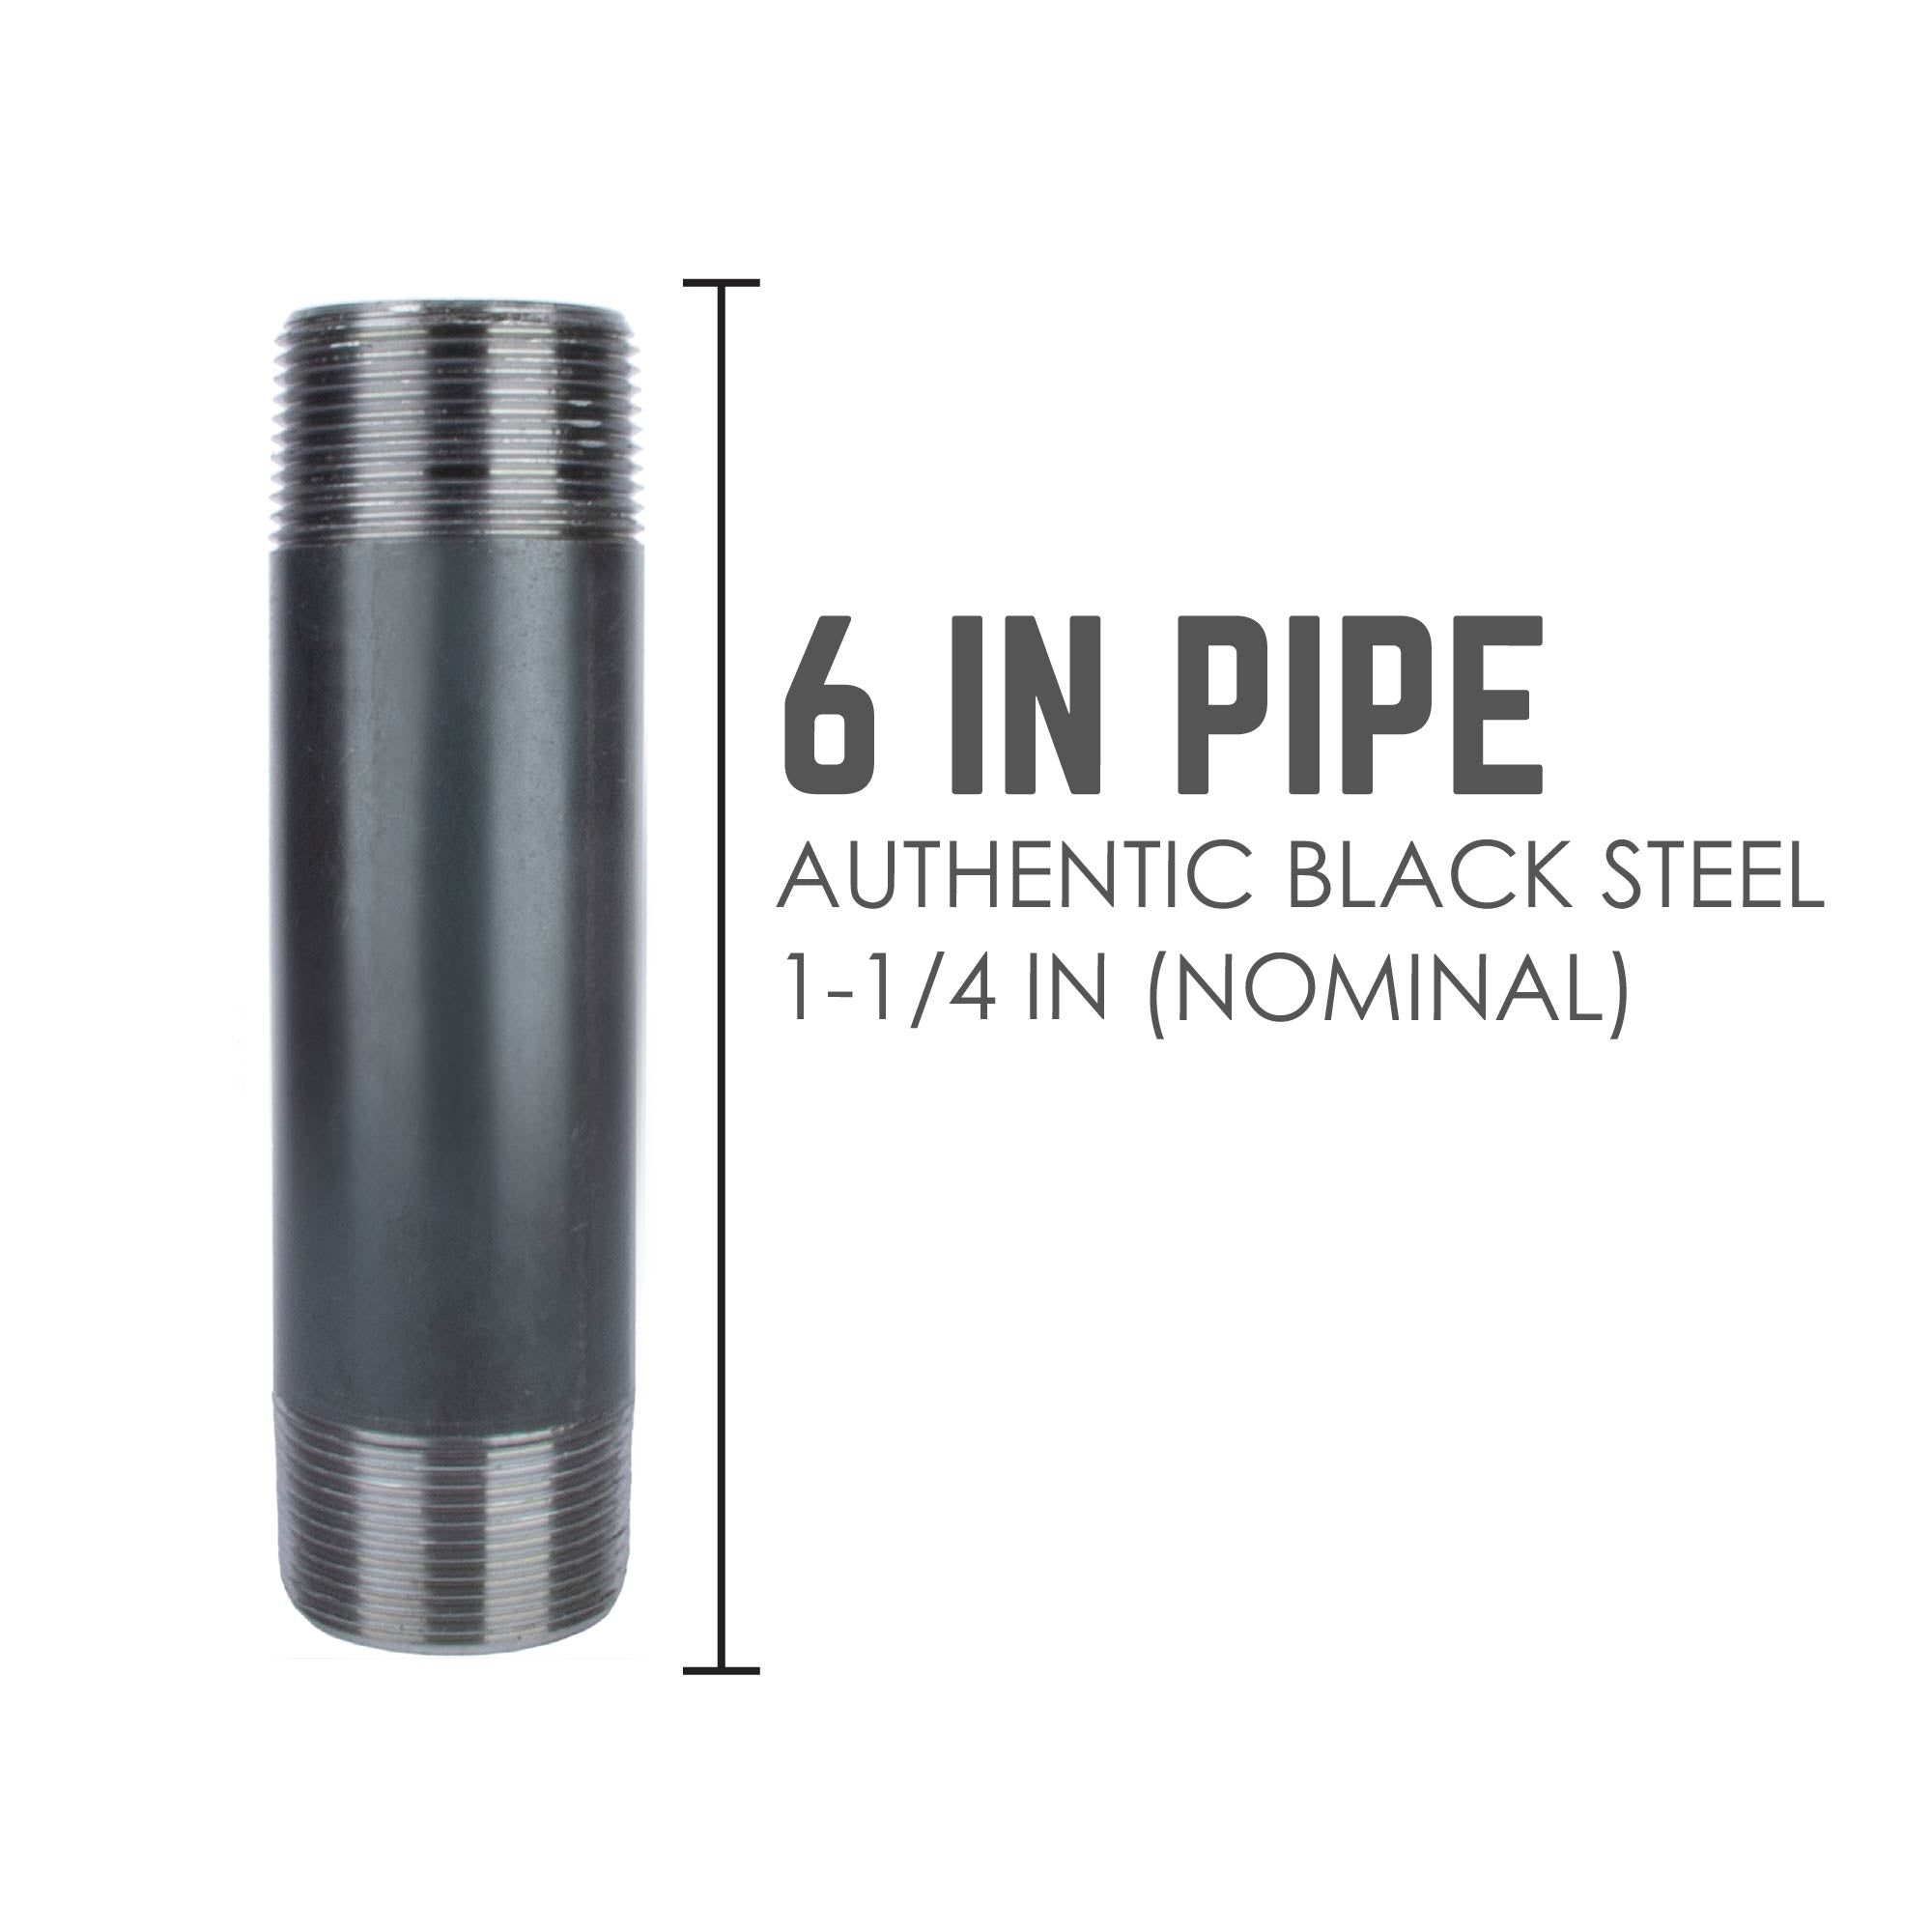 1 1/4 In X 6 In Black Pipe - Pipe Decor